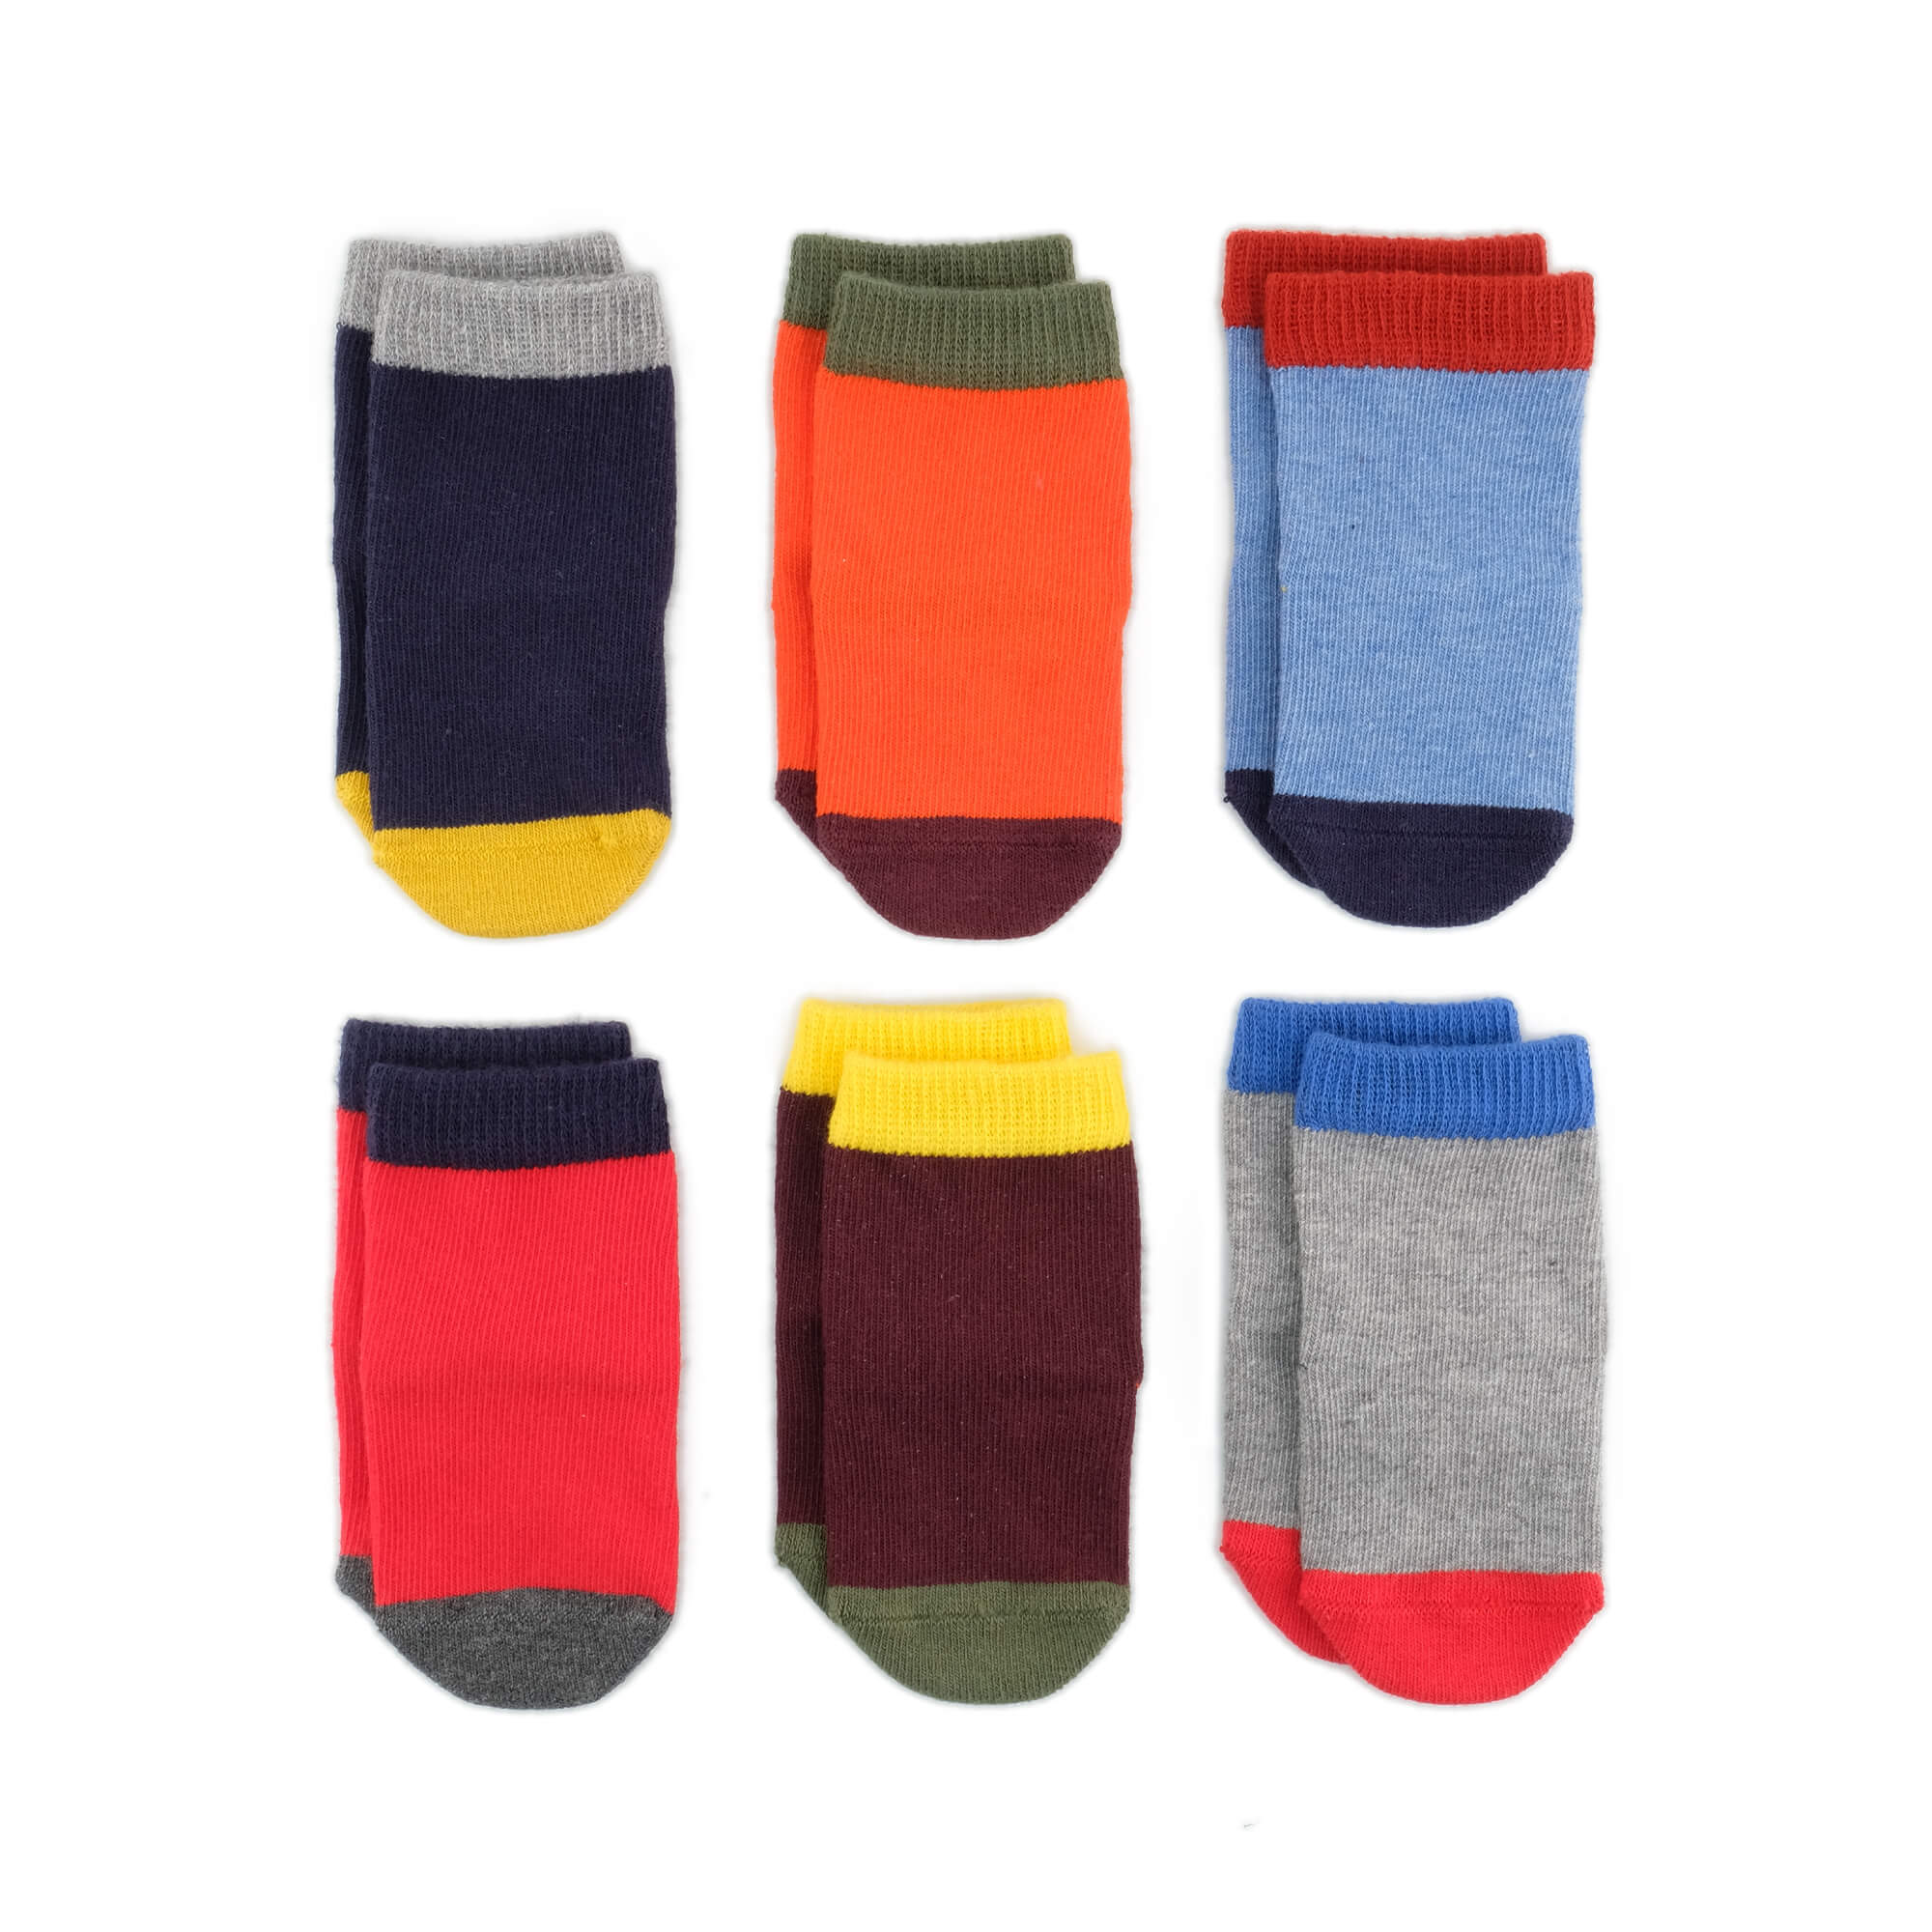 Baby Socks - Solid As A Rock Baby Socks Gift Box - Multi⎪Etiquette Clothiers